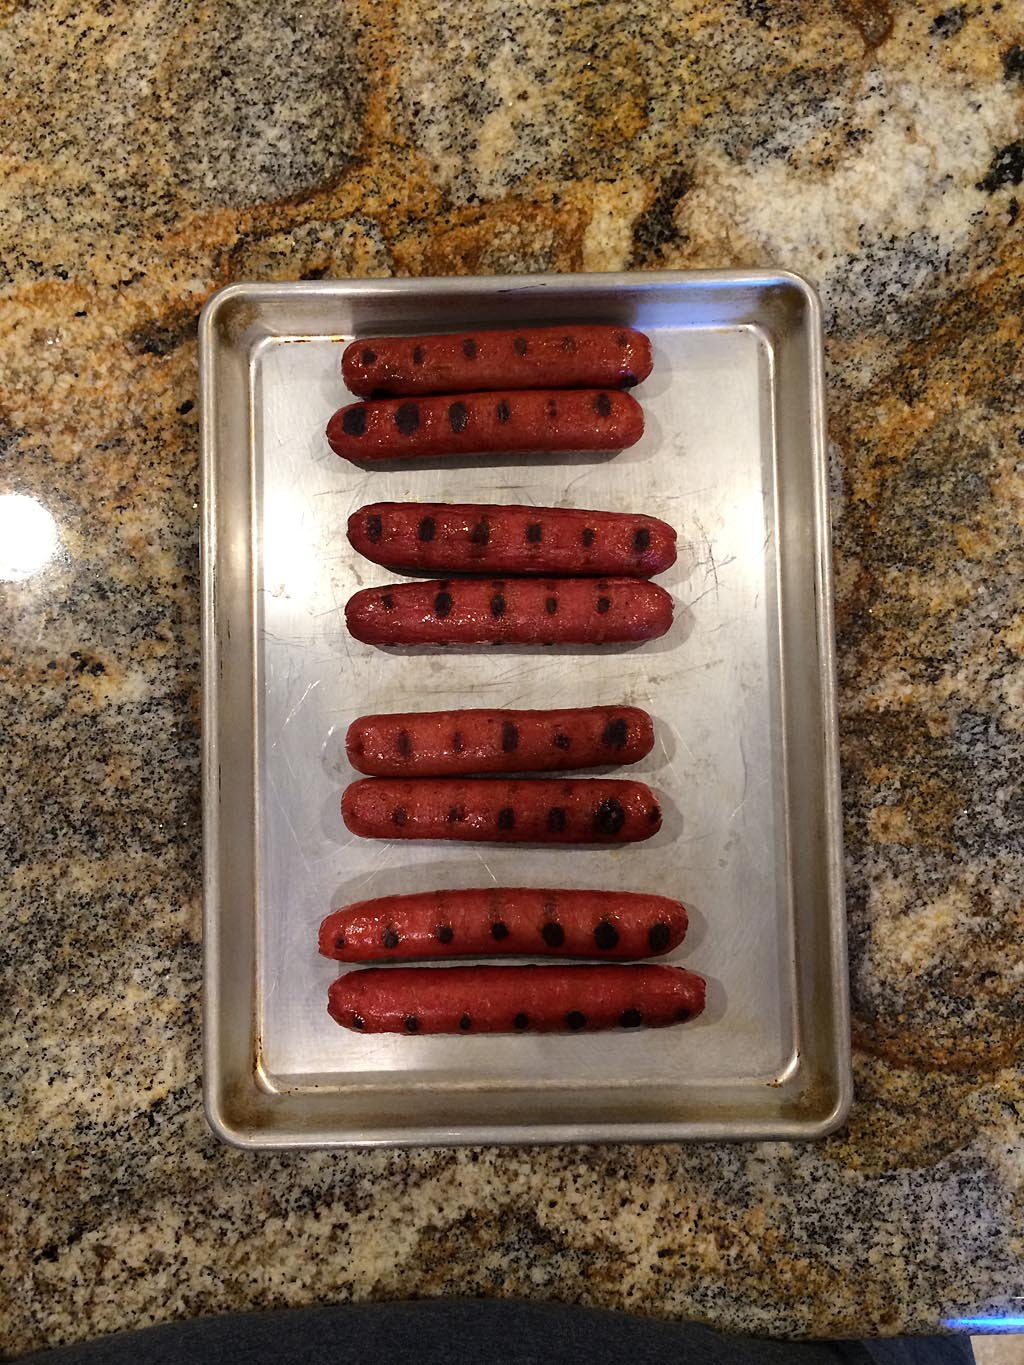 Hot dogs ready for judging